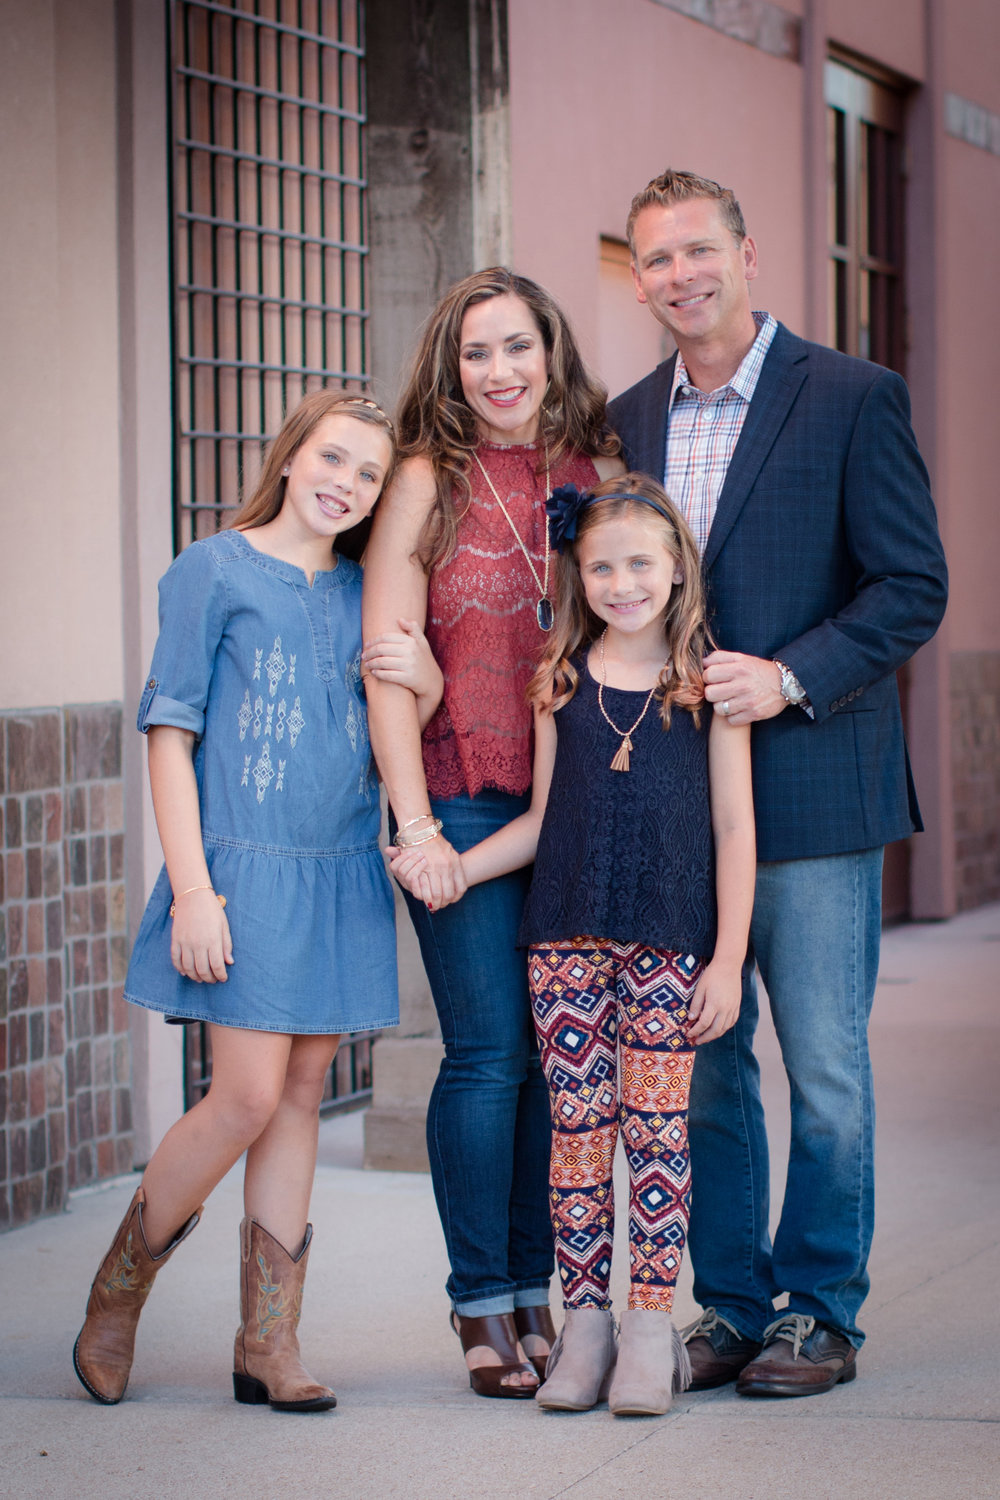 The Woodlands, Texas Family Photographer